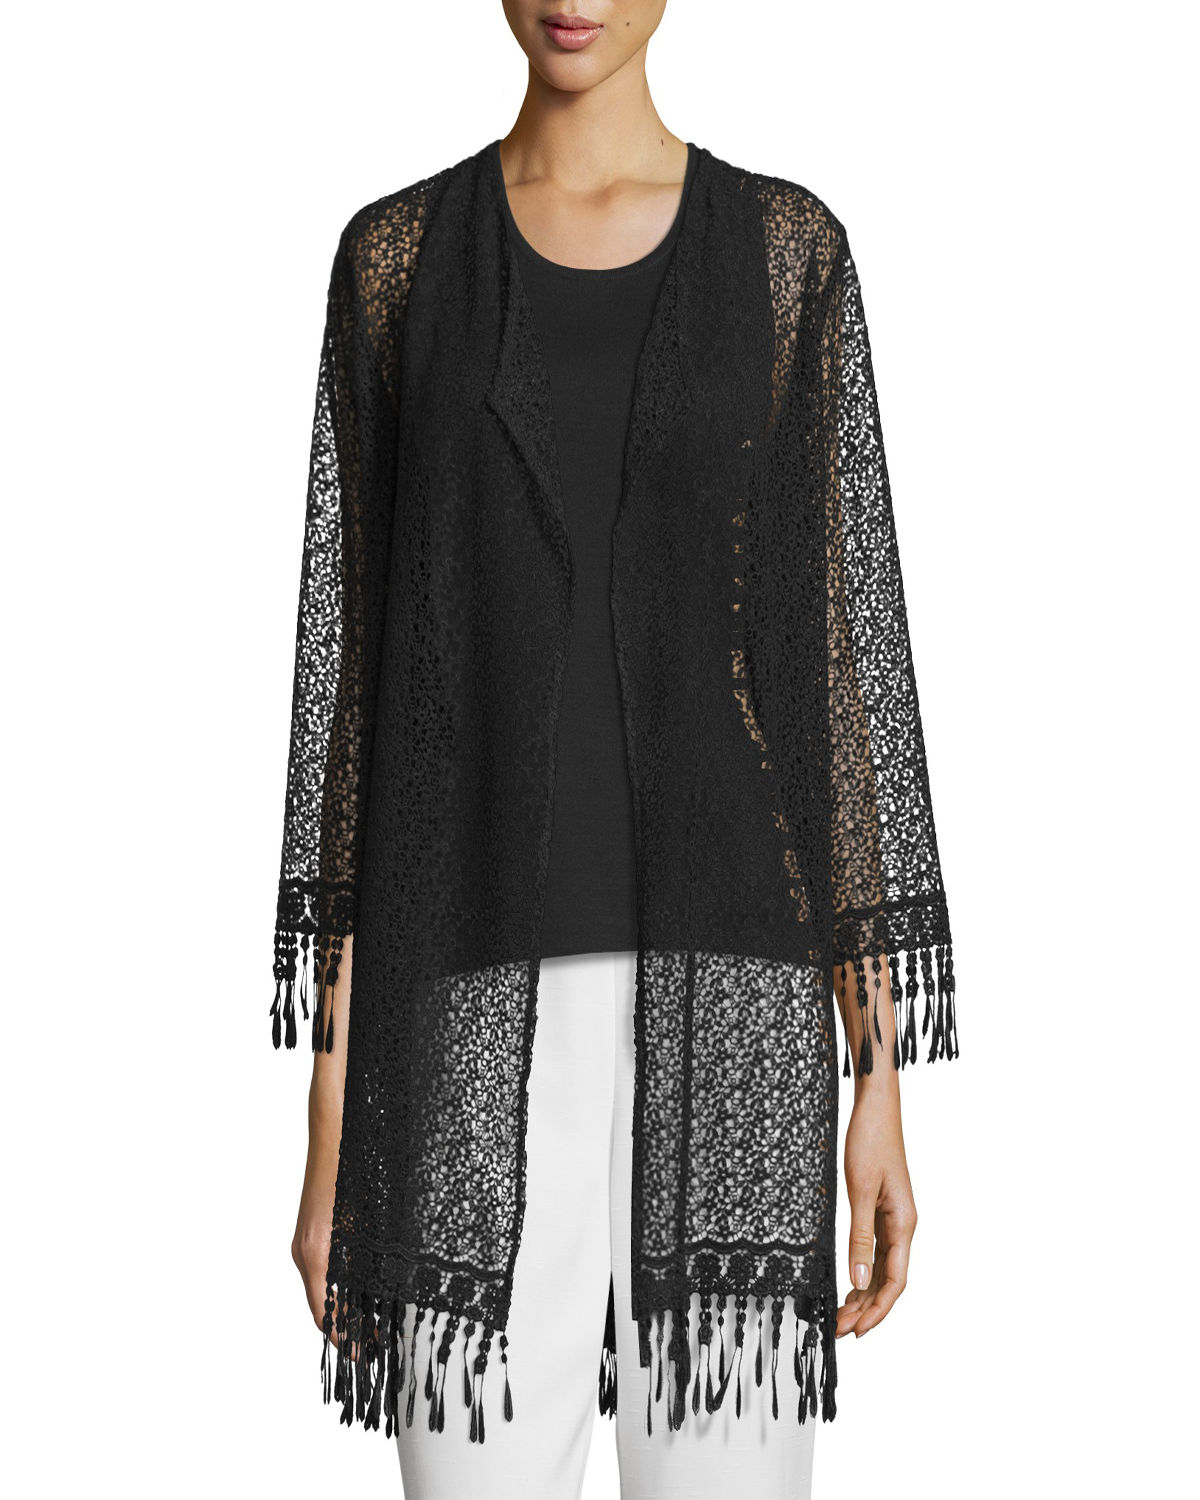 Long Lace Jacket W/ Fringe Trim